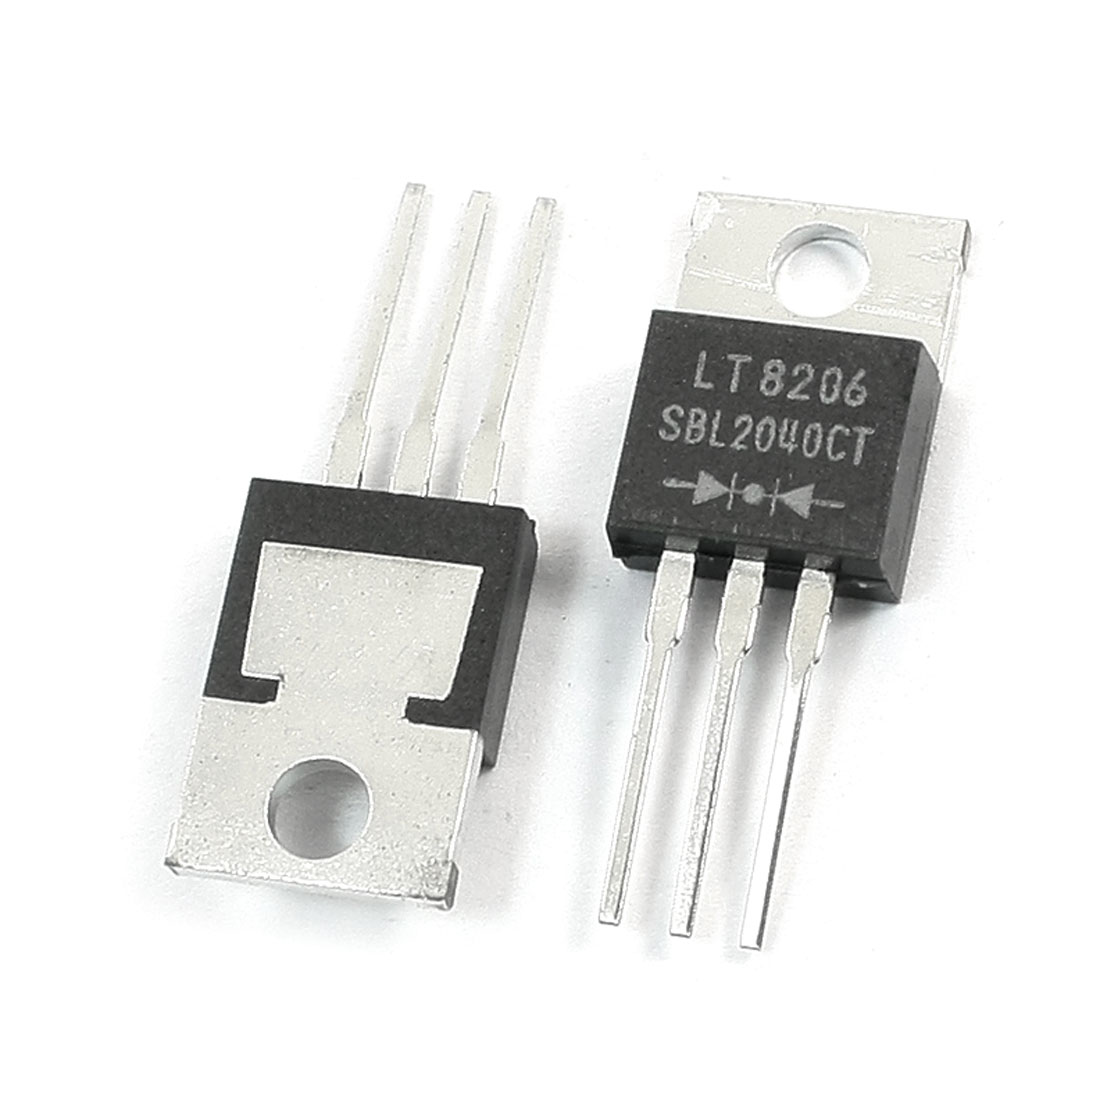 2Pcs SBL2040CT Electronic 3 Terminals Through Hole Mounting Dual High-Voltage Power Schottky Barrier Rectifier Diode